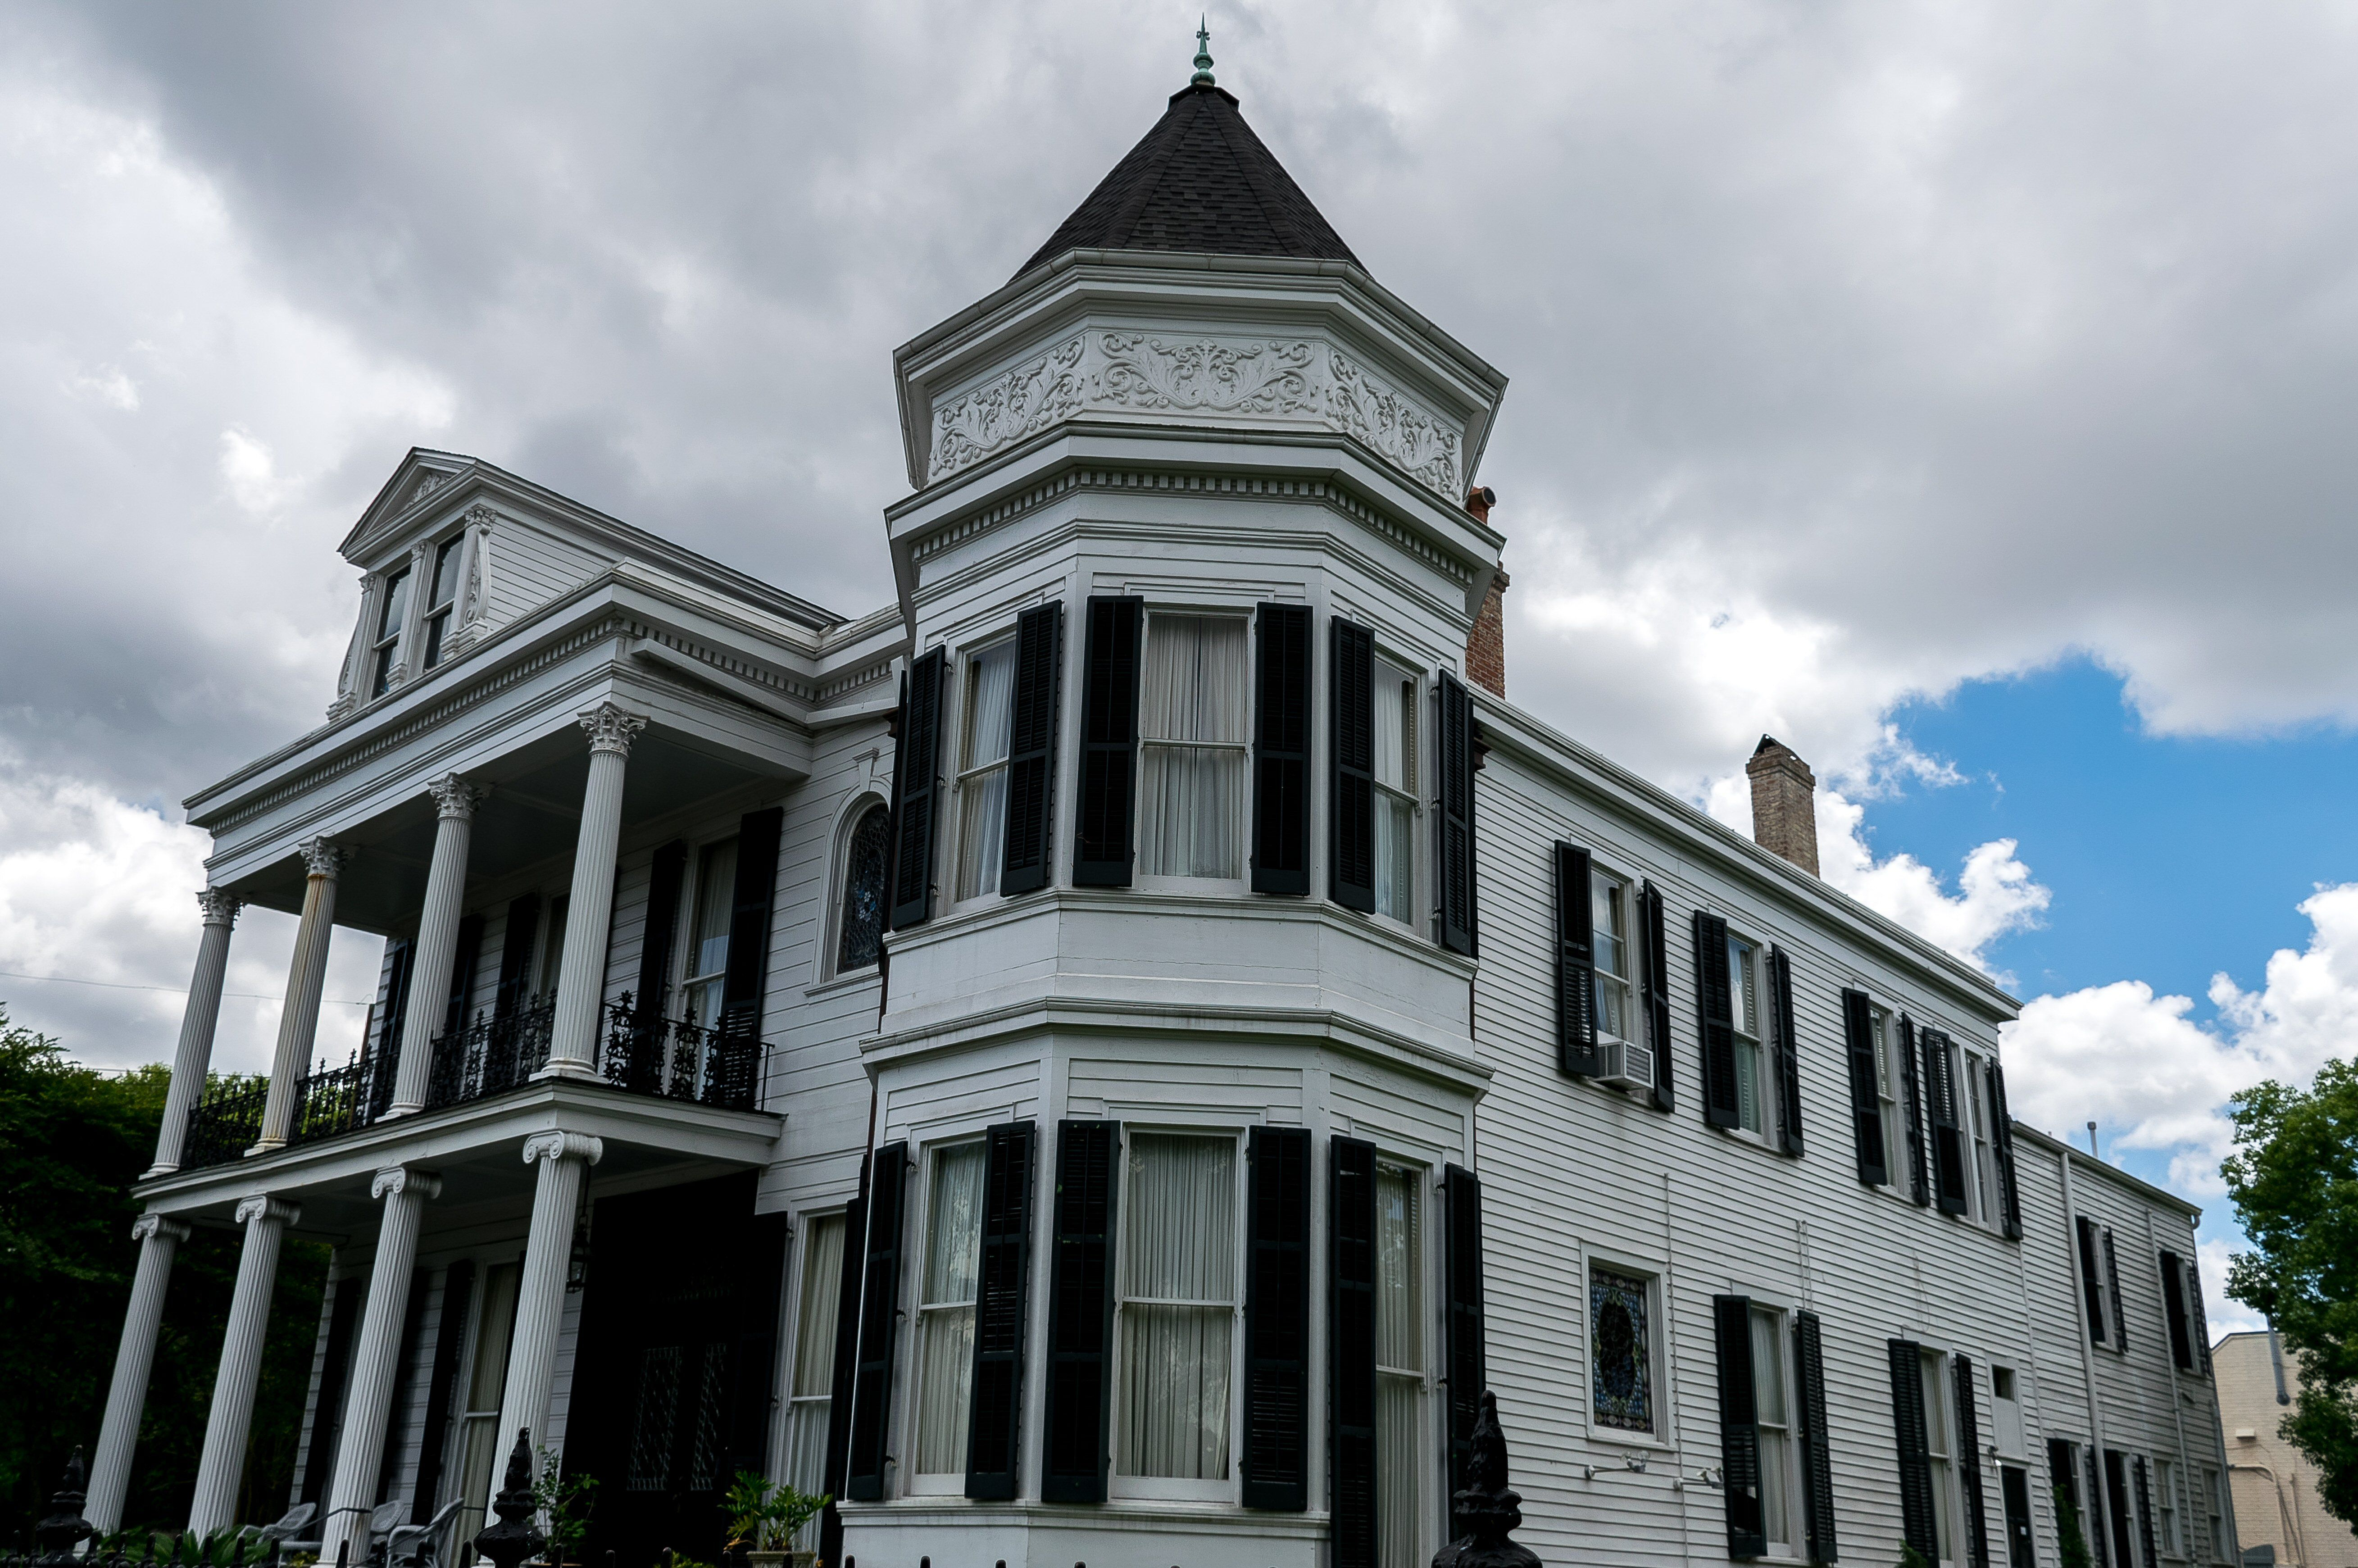 victorian house with queen anne turret near a double columned two story porch